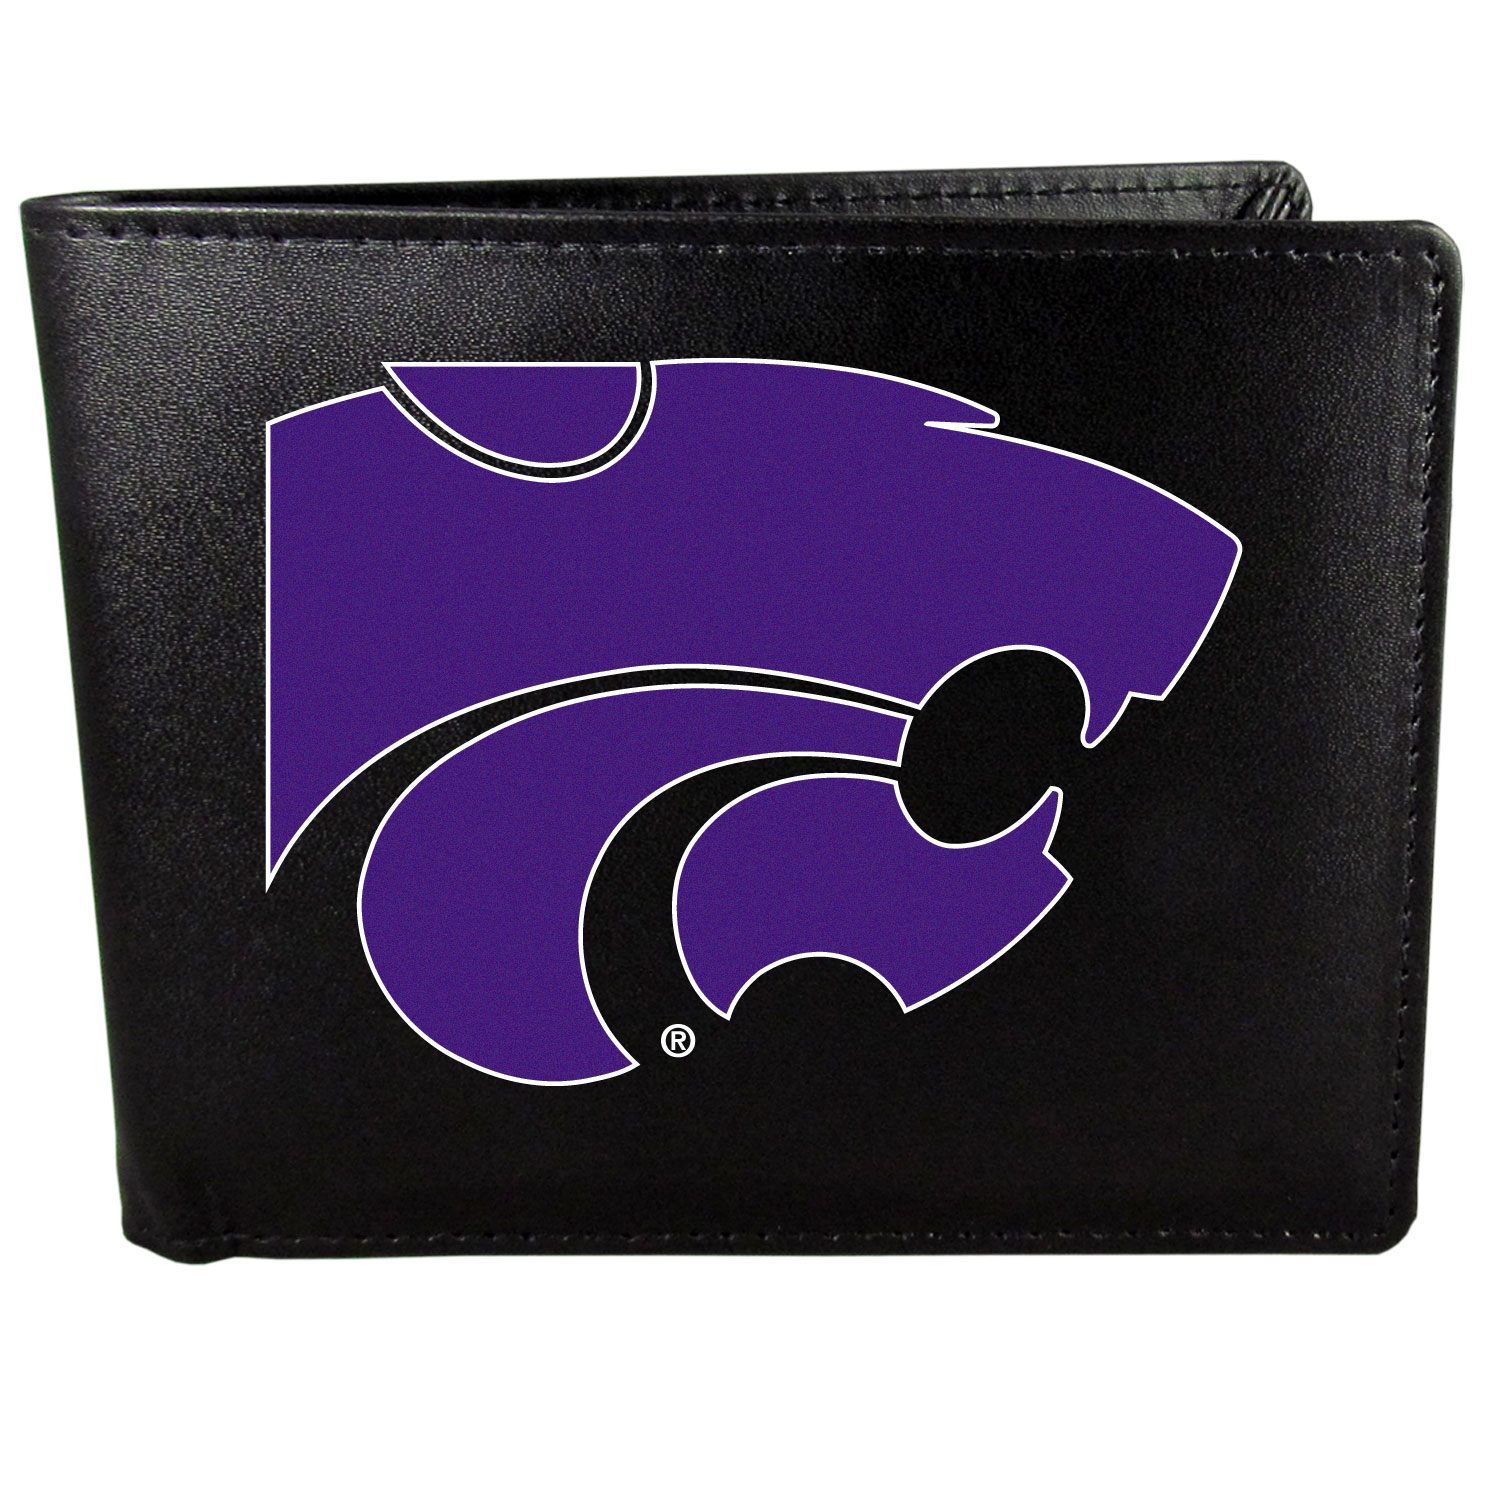 Kansas St. Wildcats Leather Bi-fold Wallet, Large Logo - Our classic fine leather bi-fold wallet is meticulously crafted with genuine leather that will age beautifully so you will have a quality wallet for years to come. The wallet opens to a large, billfold pocket and numerous credit card slots and has a convenient windowed ID slot. The front of the wallet features an extra large Kansas St. Wildcats printed logo.